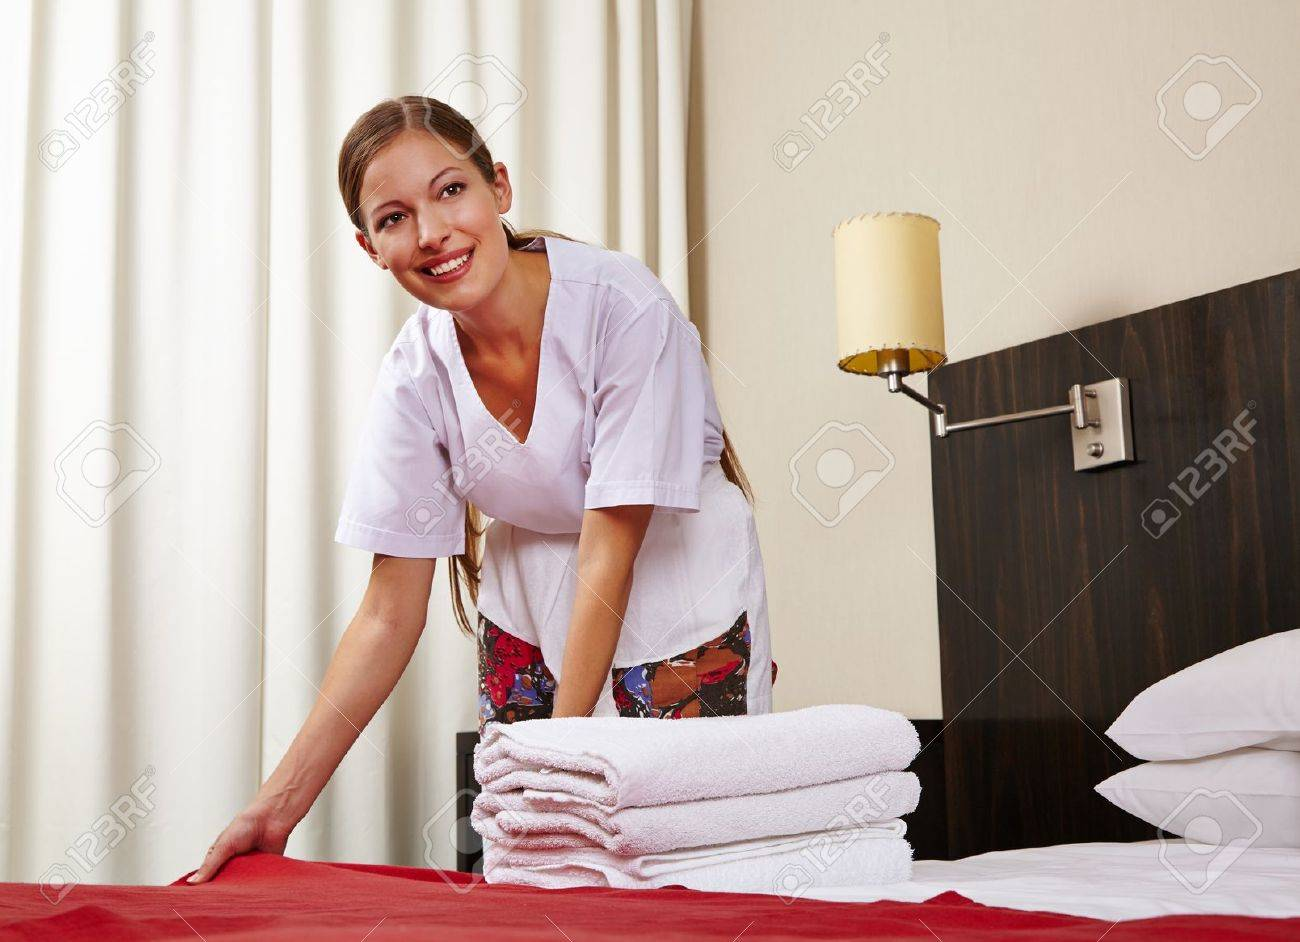 Housekeeping maid in hotel room making bed Stock Photo - 20104179